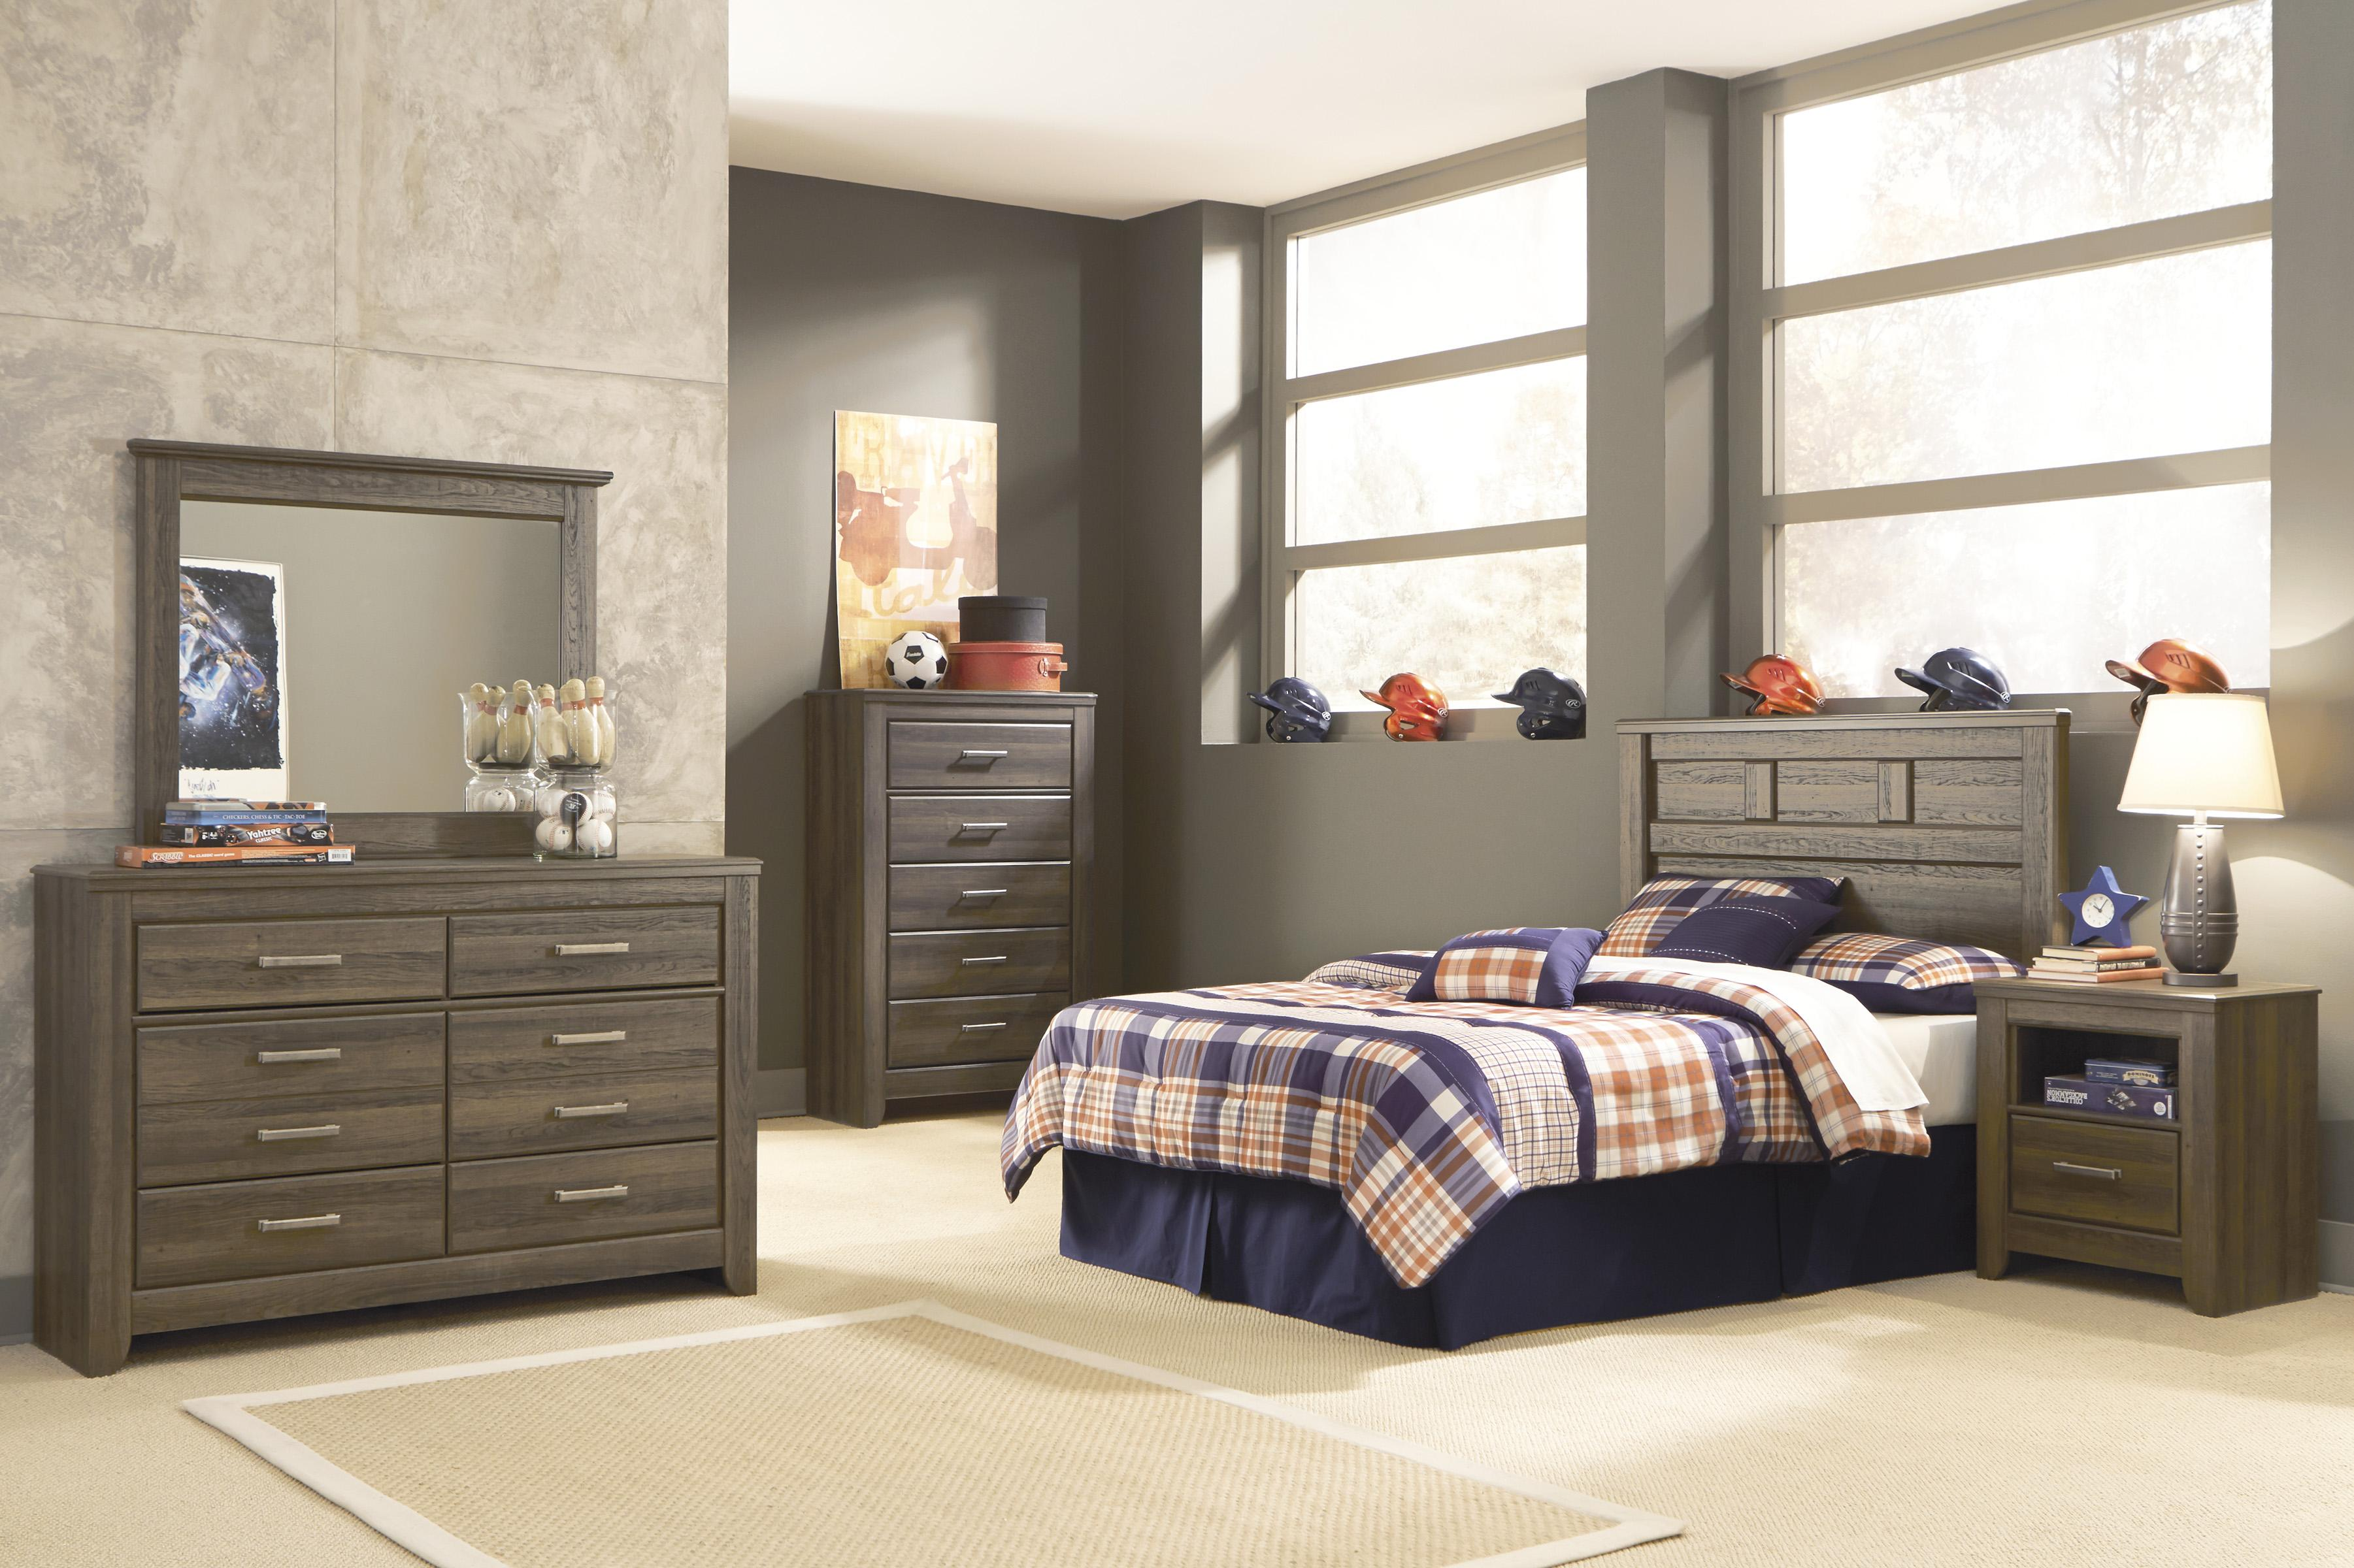 Signature Design by Ashley Juararo Full Bedroom Group - Item Number: B251 F Bedroom Group 3